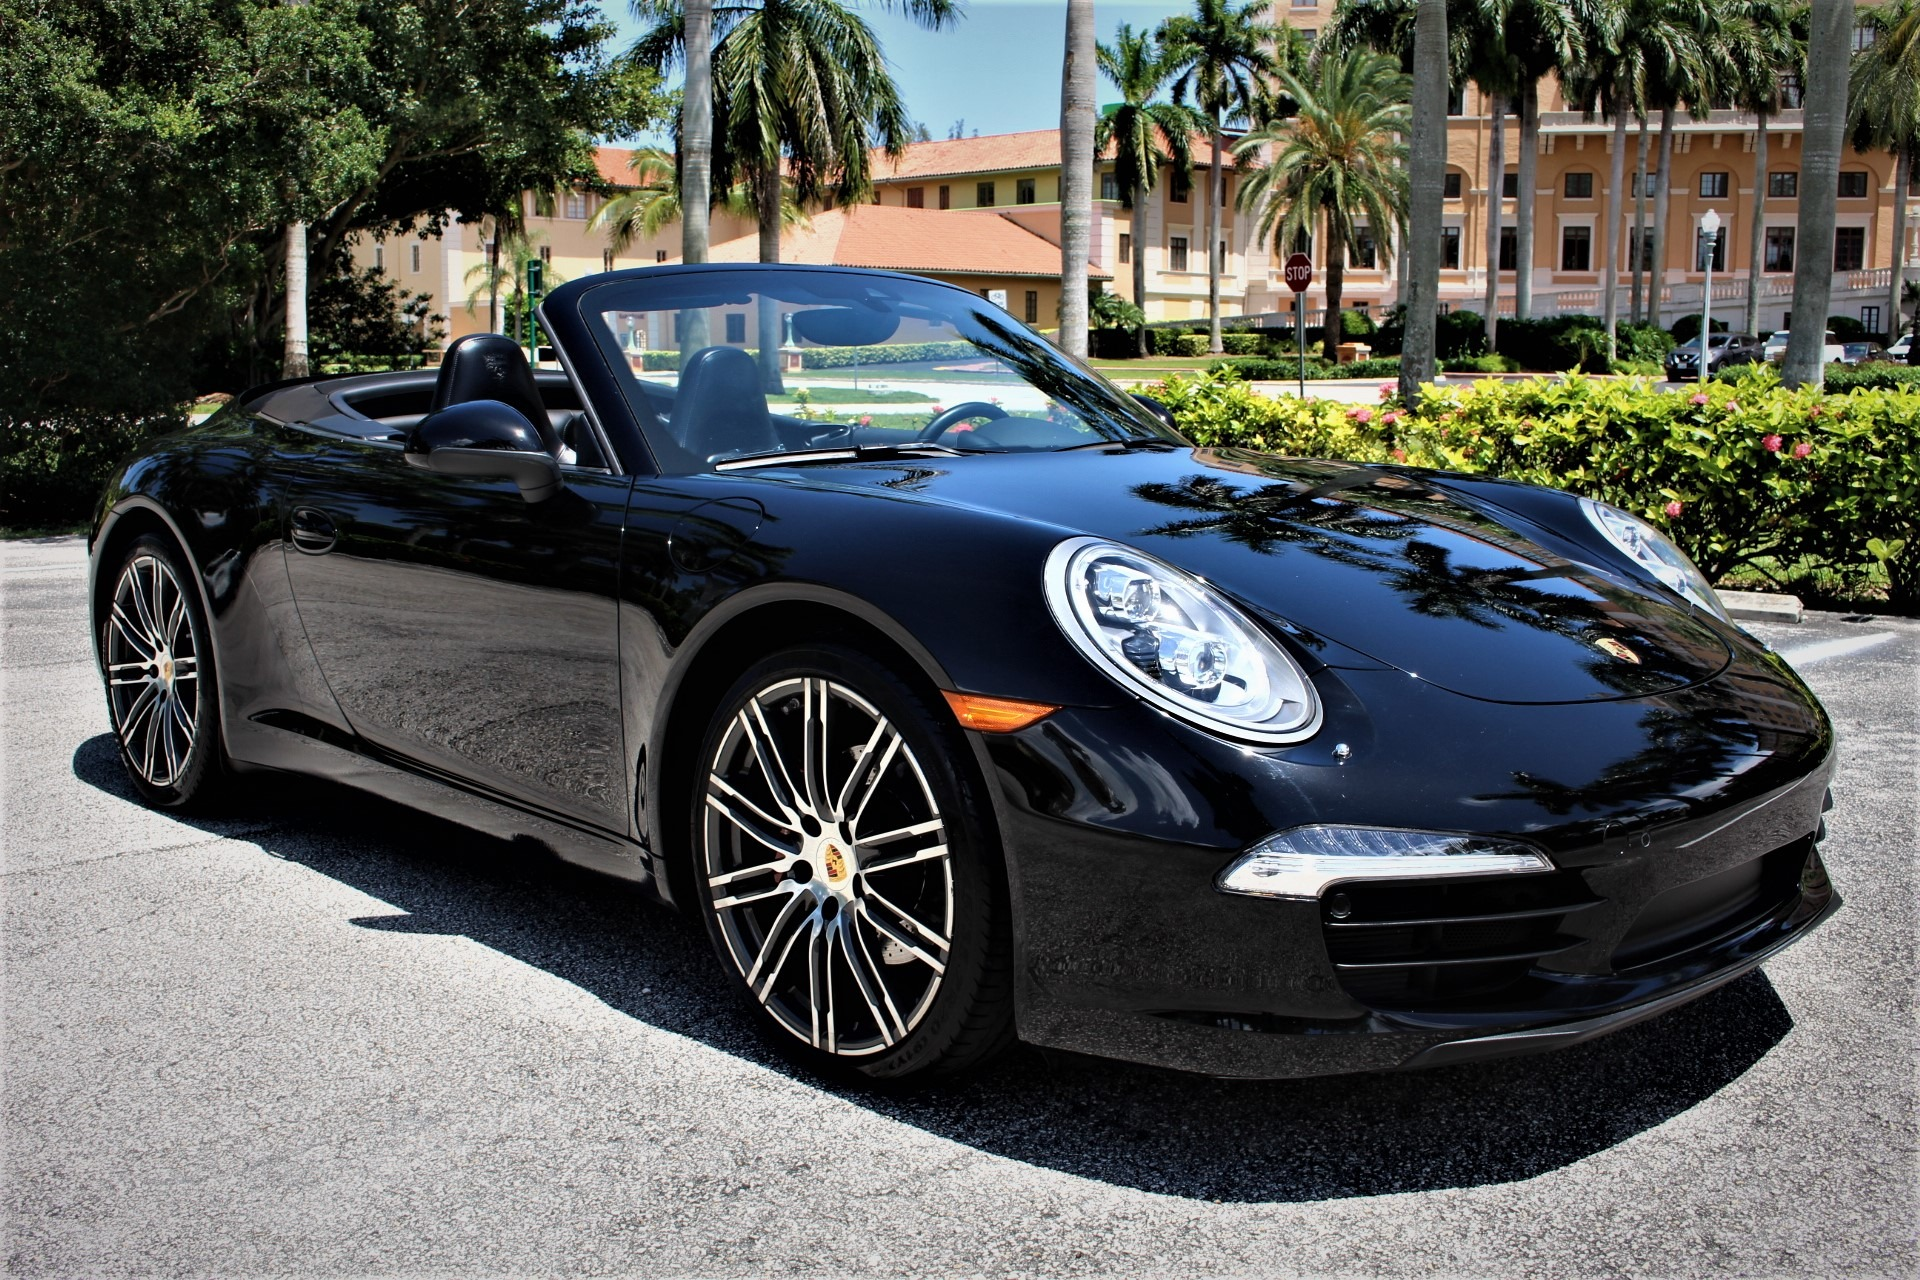 Used 2016 Porsche 911 Carrera Black Edition for sale Sold at The Gables Sports Cars in Miami FL 33146 2